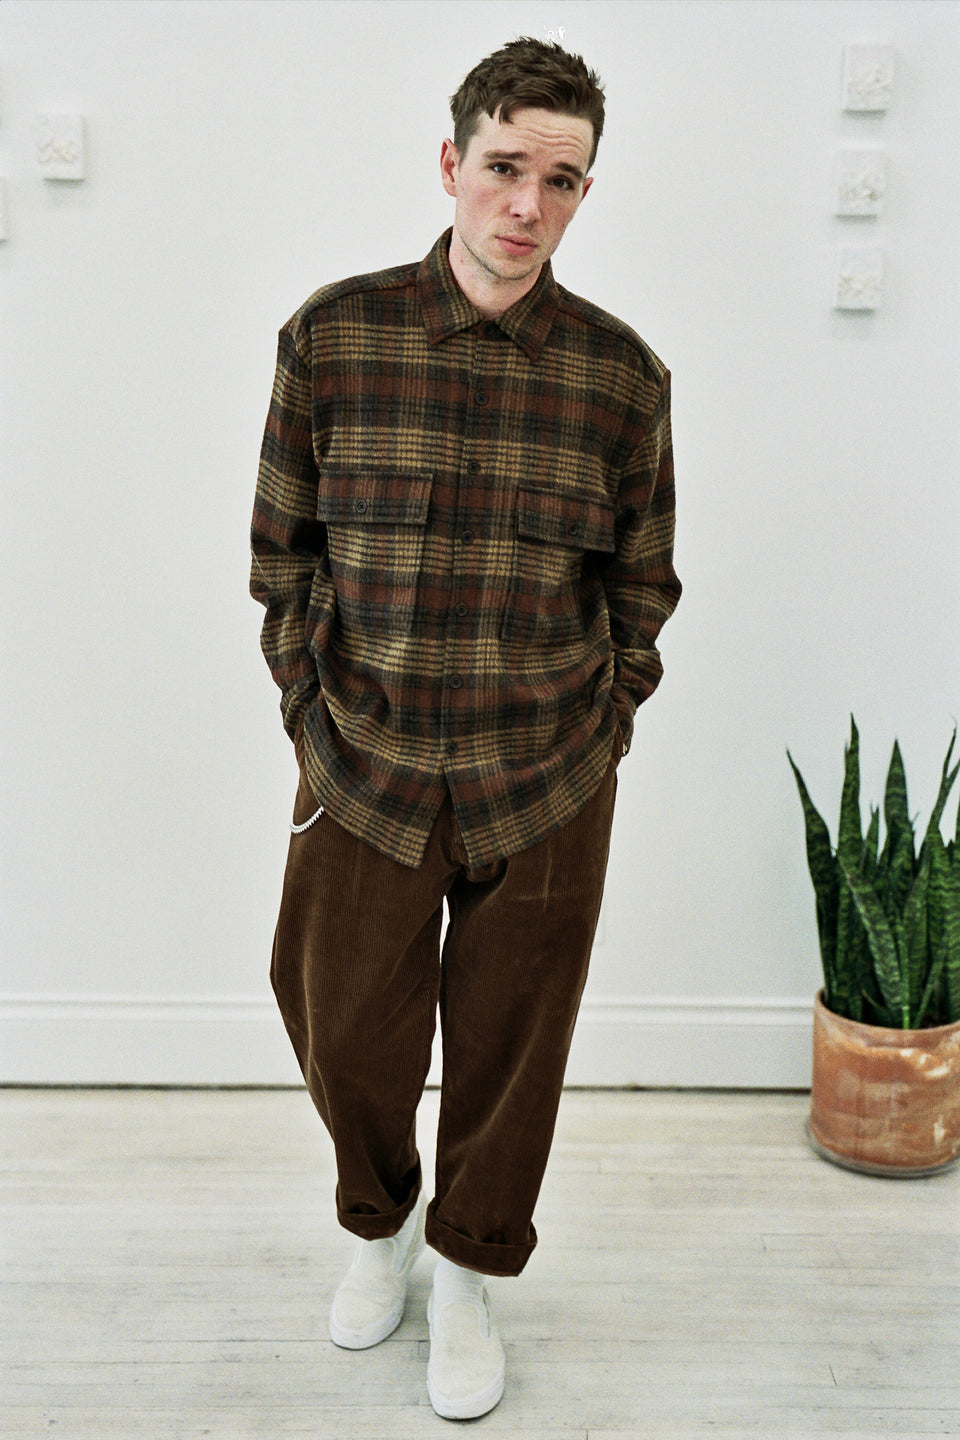 Evan Kinori Big Shirt Multi-Colour Check Wool Gauze